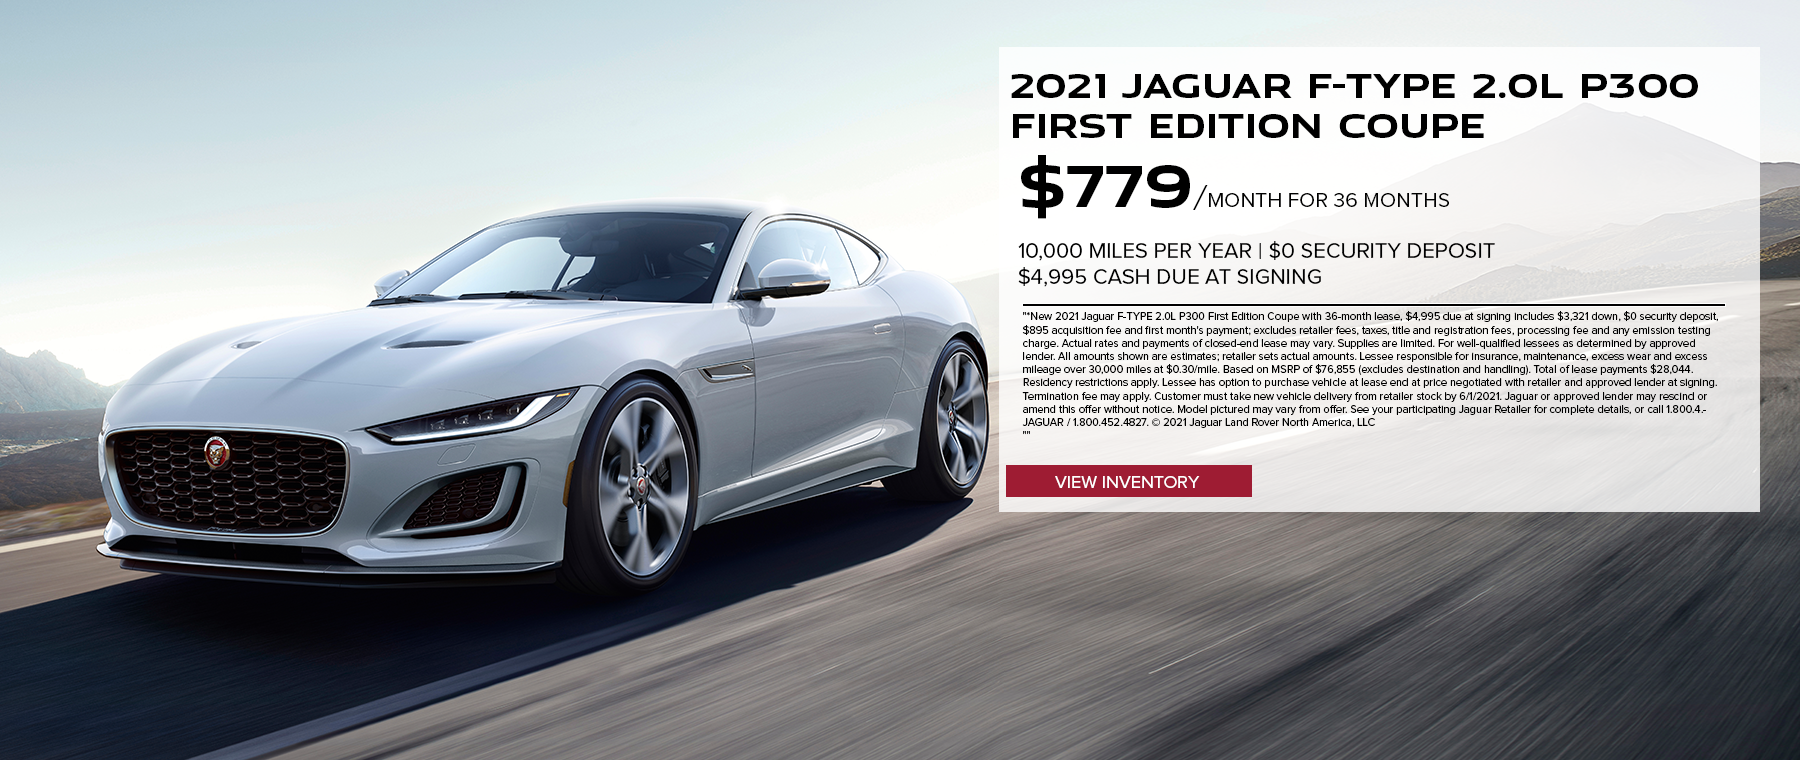 May 2021 F-TYPE Coupe UPDATED